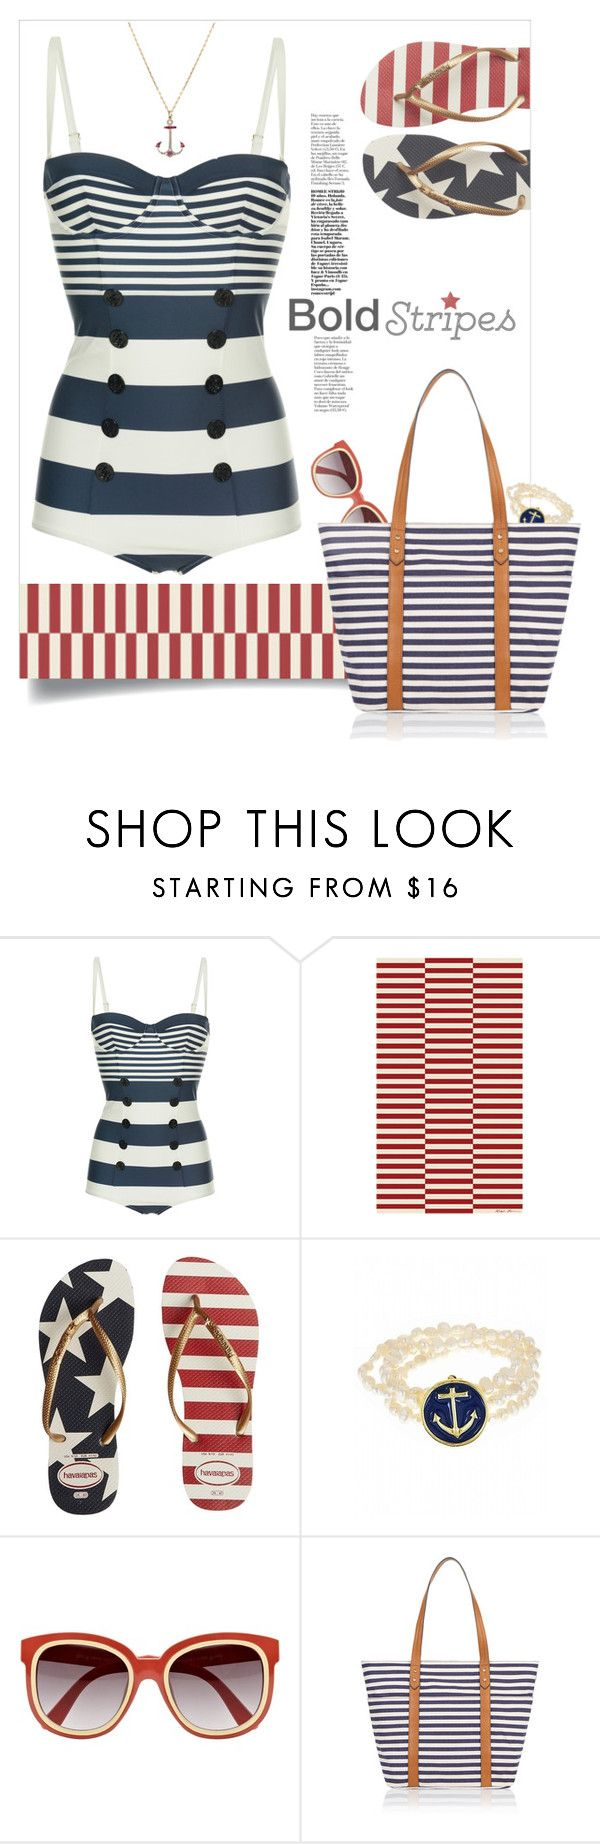 """Nautical."" by s-elle ❤ liked on Polyvore featuring Dolce&Gabbana, Ralph Lauren Home, Havaianas, Fornash, River Island, Accessorize and BoldStripes"